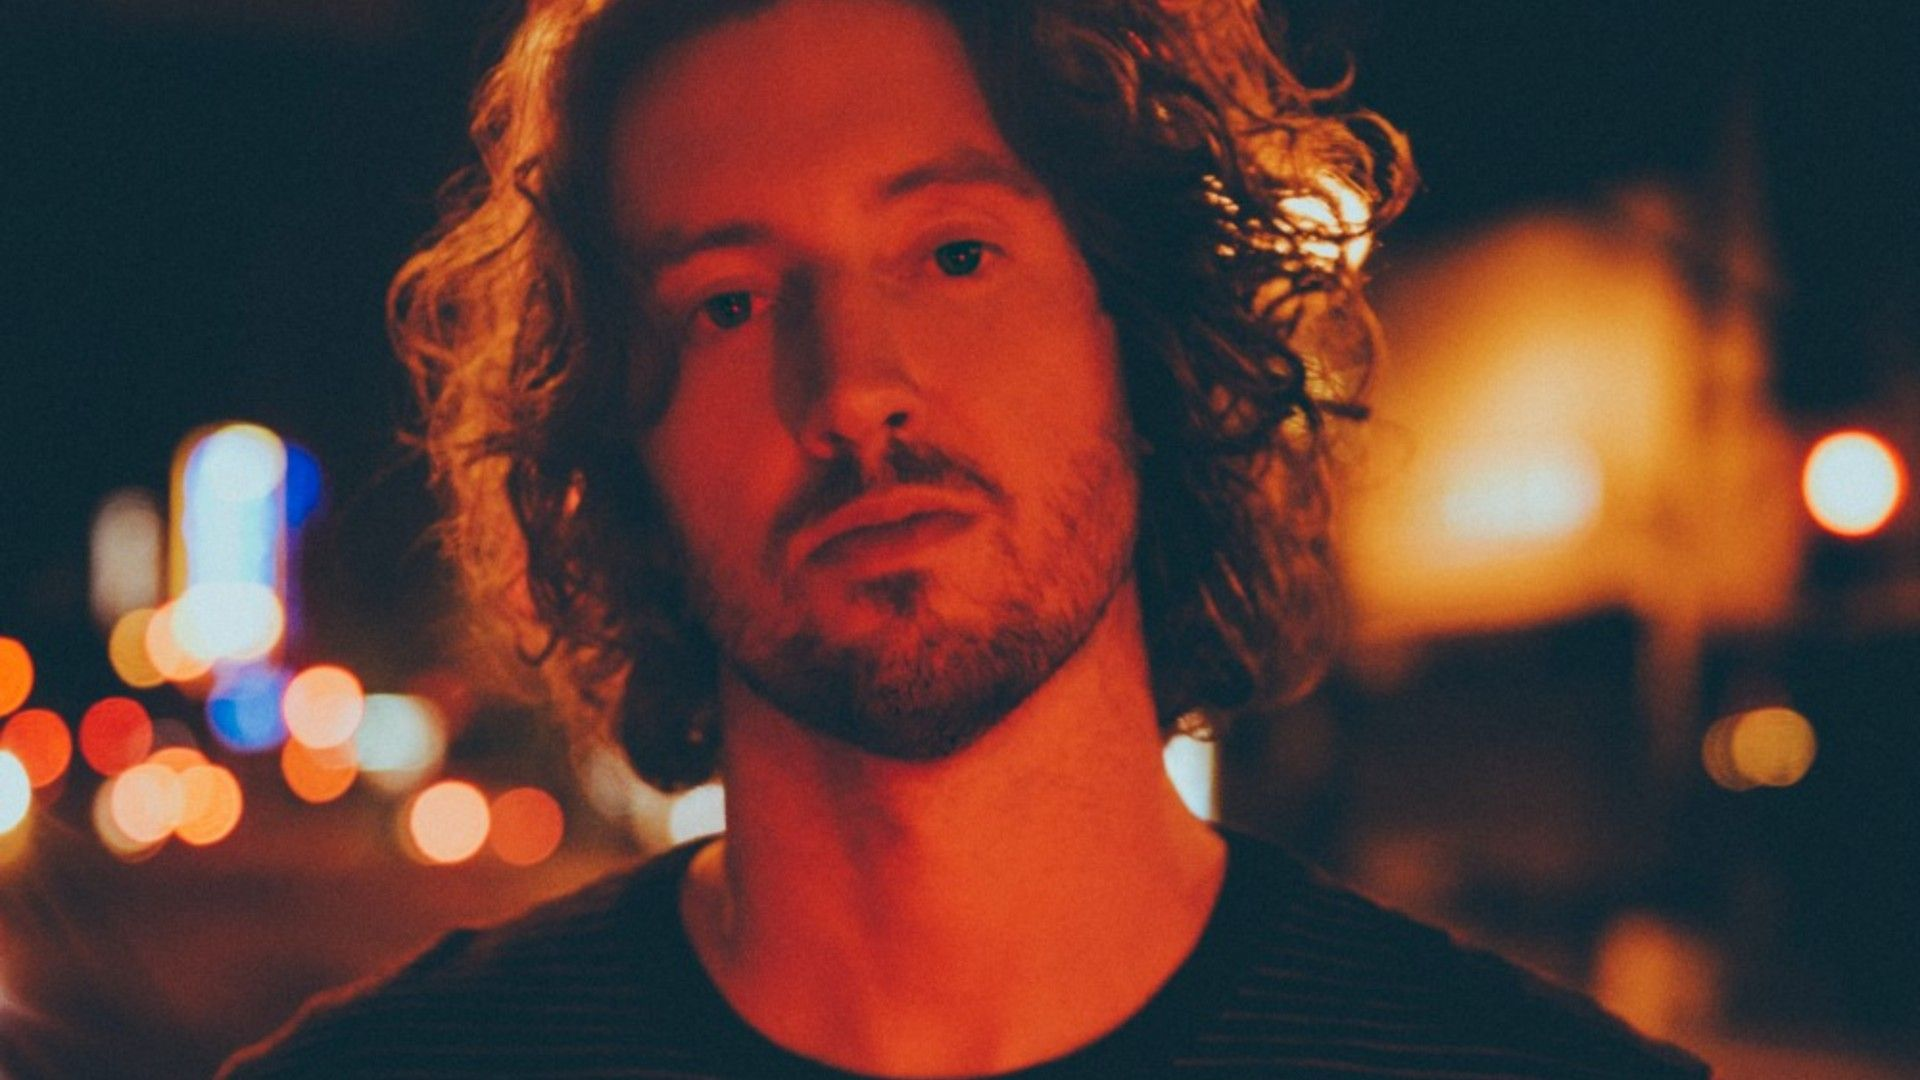 Dean Lewis Releases New Single 'Falling Up'; Global Video Premiere Tomorrow on YouTube